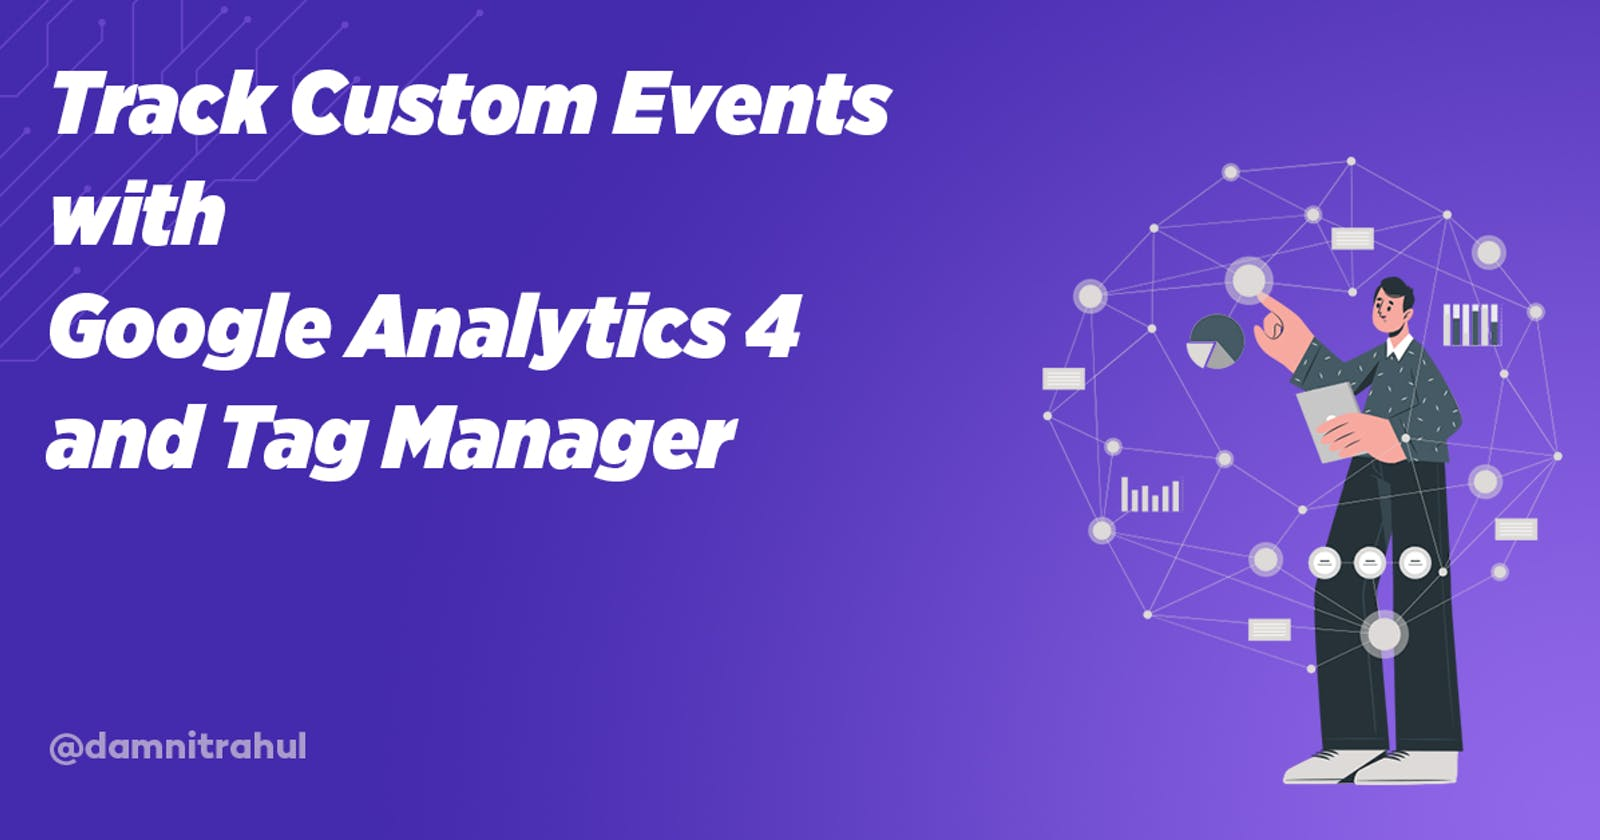 Track Custom Events with Google Analytics 4 and Google Tag Manager